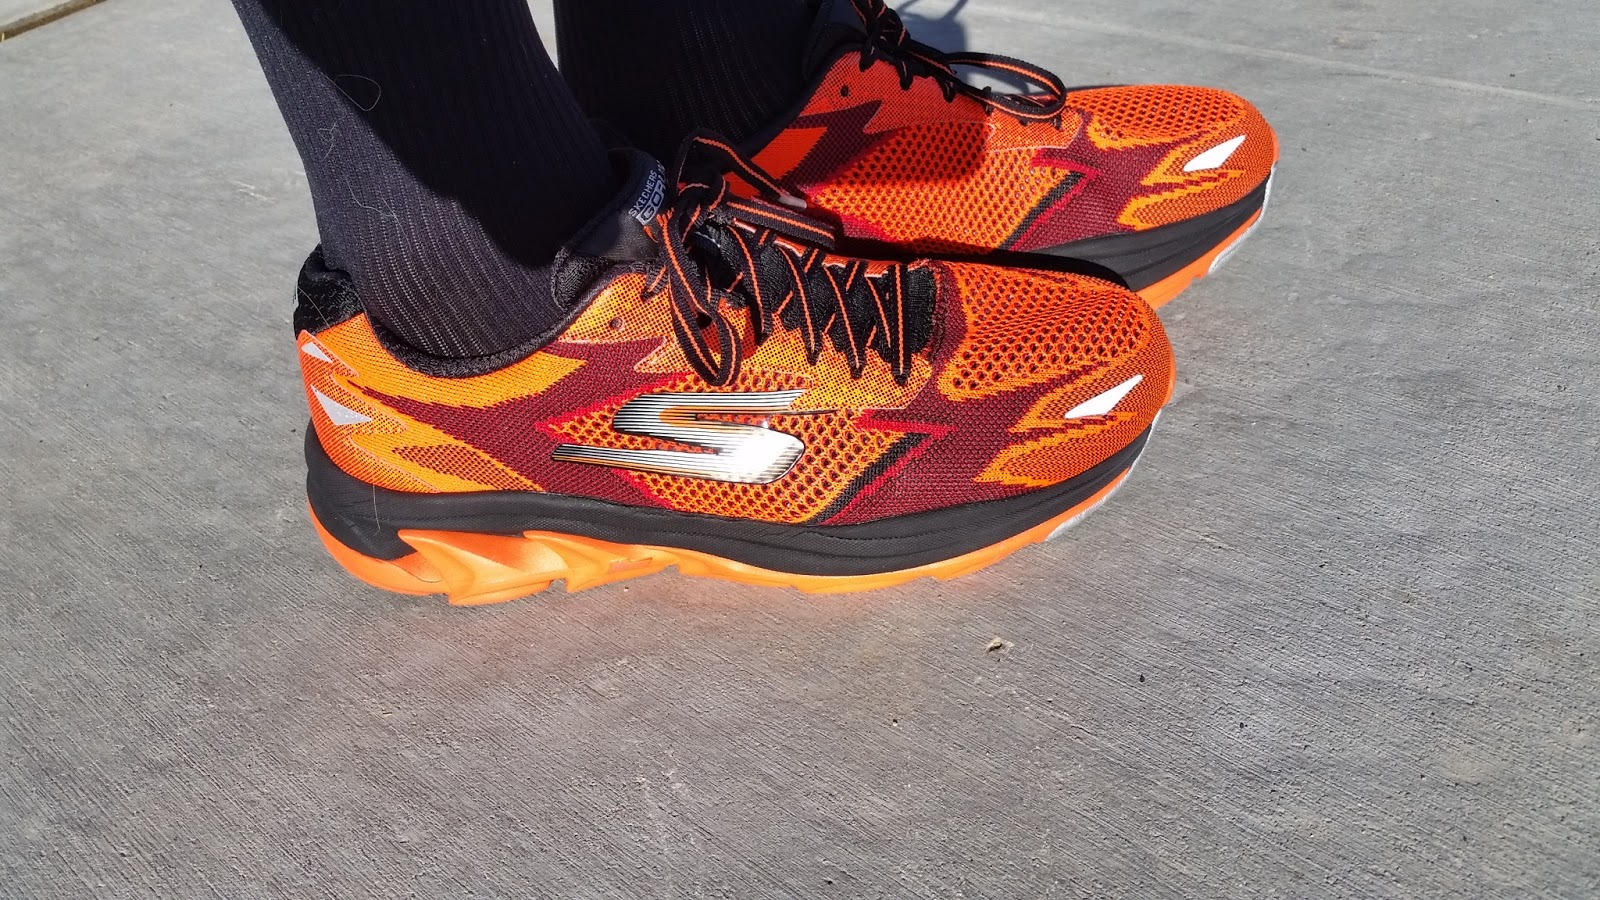 767a7d68b480 I have been pleased with the Skechers that I have tested in the past. The GOrun  Ultra Road is the sister to the GOrun Ultra 2 (click here for my past  review ...